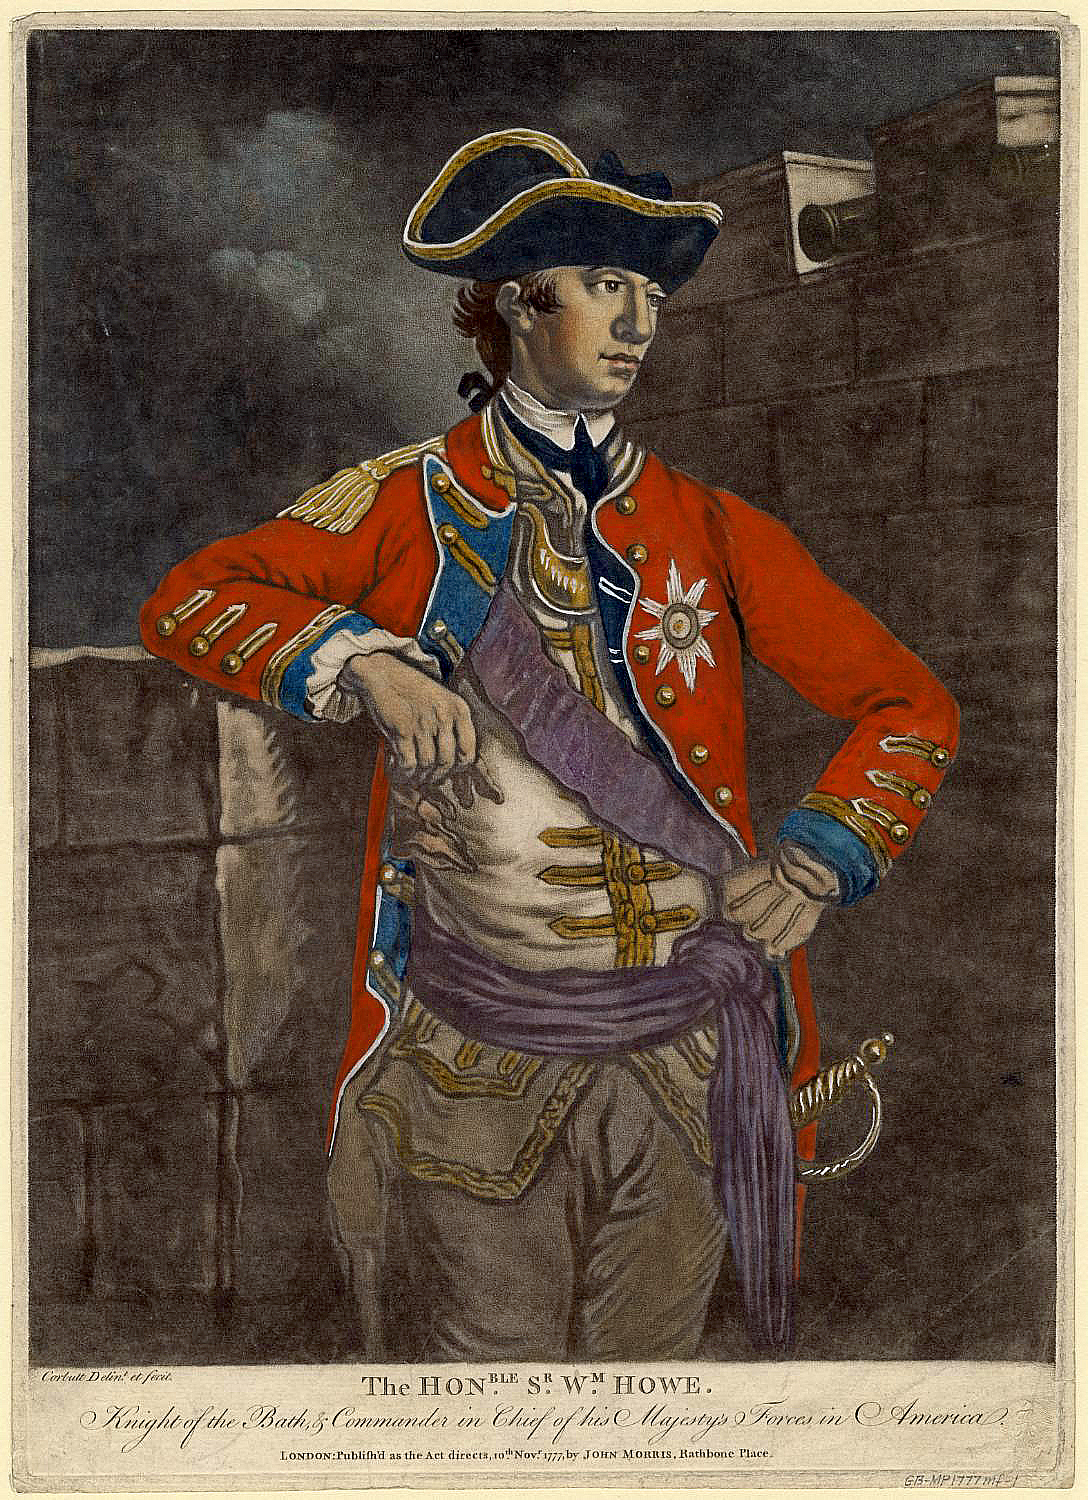 Color mezzotint of General Sir William Howe, 5th Viscount Howe,, by Richard Purcell aka Charles Corbutt, November 1777. From the Anne S.K. Brown Military History Collection at Brown University.